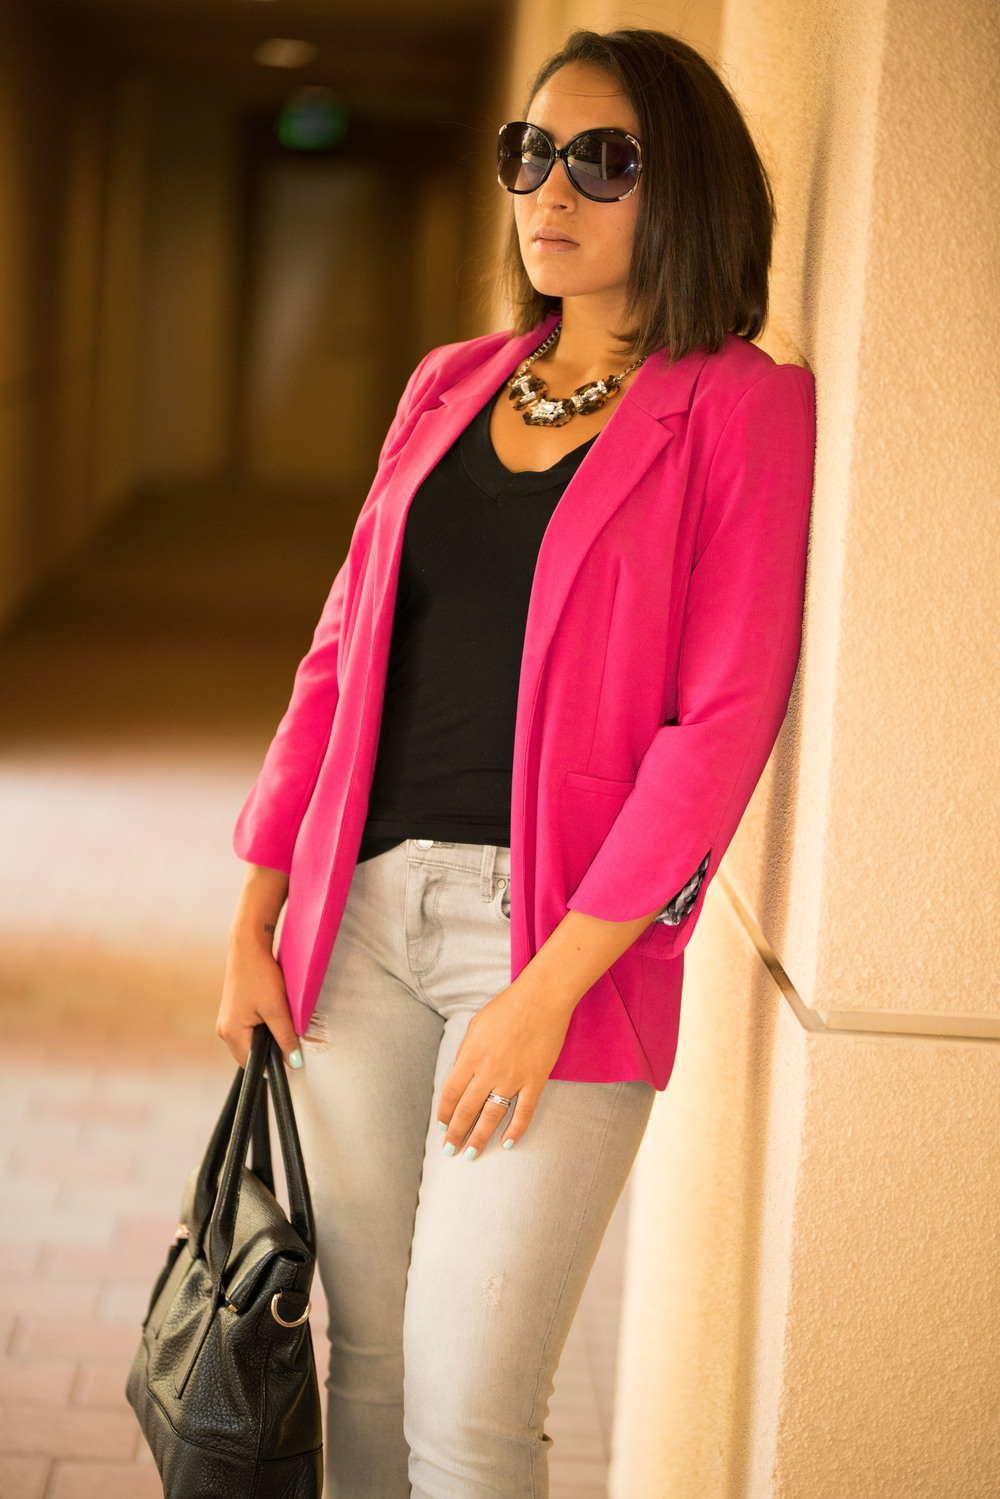 Denim:  Banana Republic  | Necklace: Charming Charlie | Blazer:  Nordstrom  | Purse:  Kate Space   Shoes:  Jimmy Choo